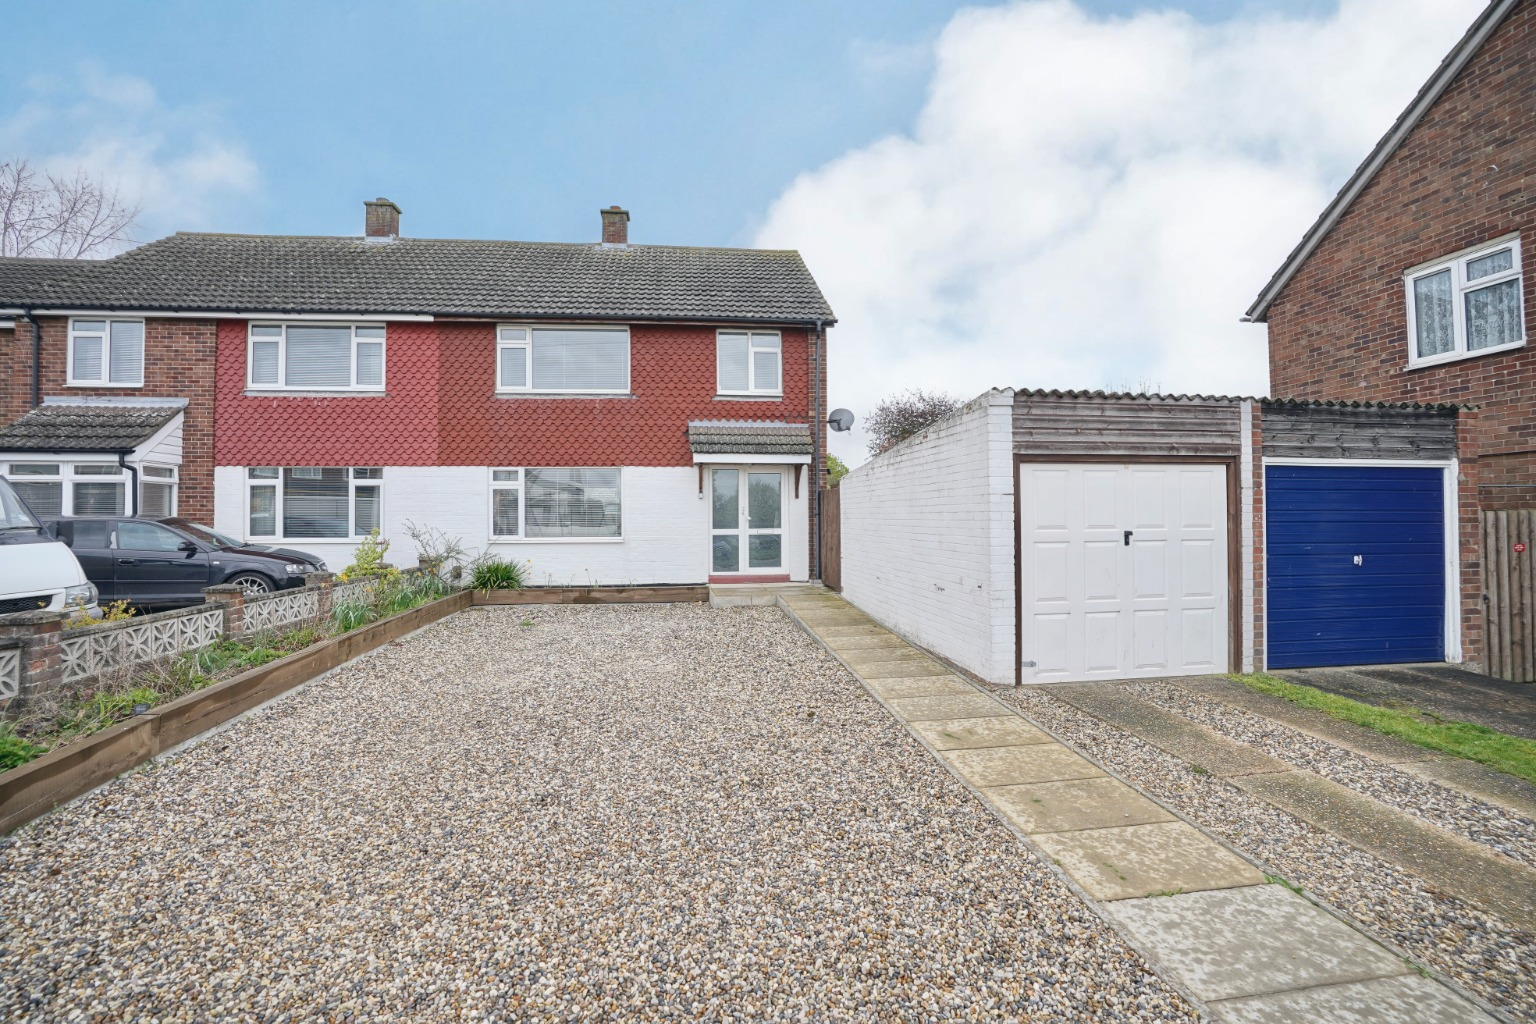 3 bed semi-detached house for sale in Longsands Road, St. Neots 0